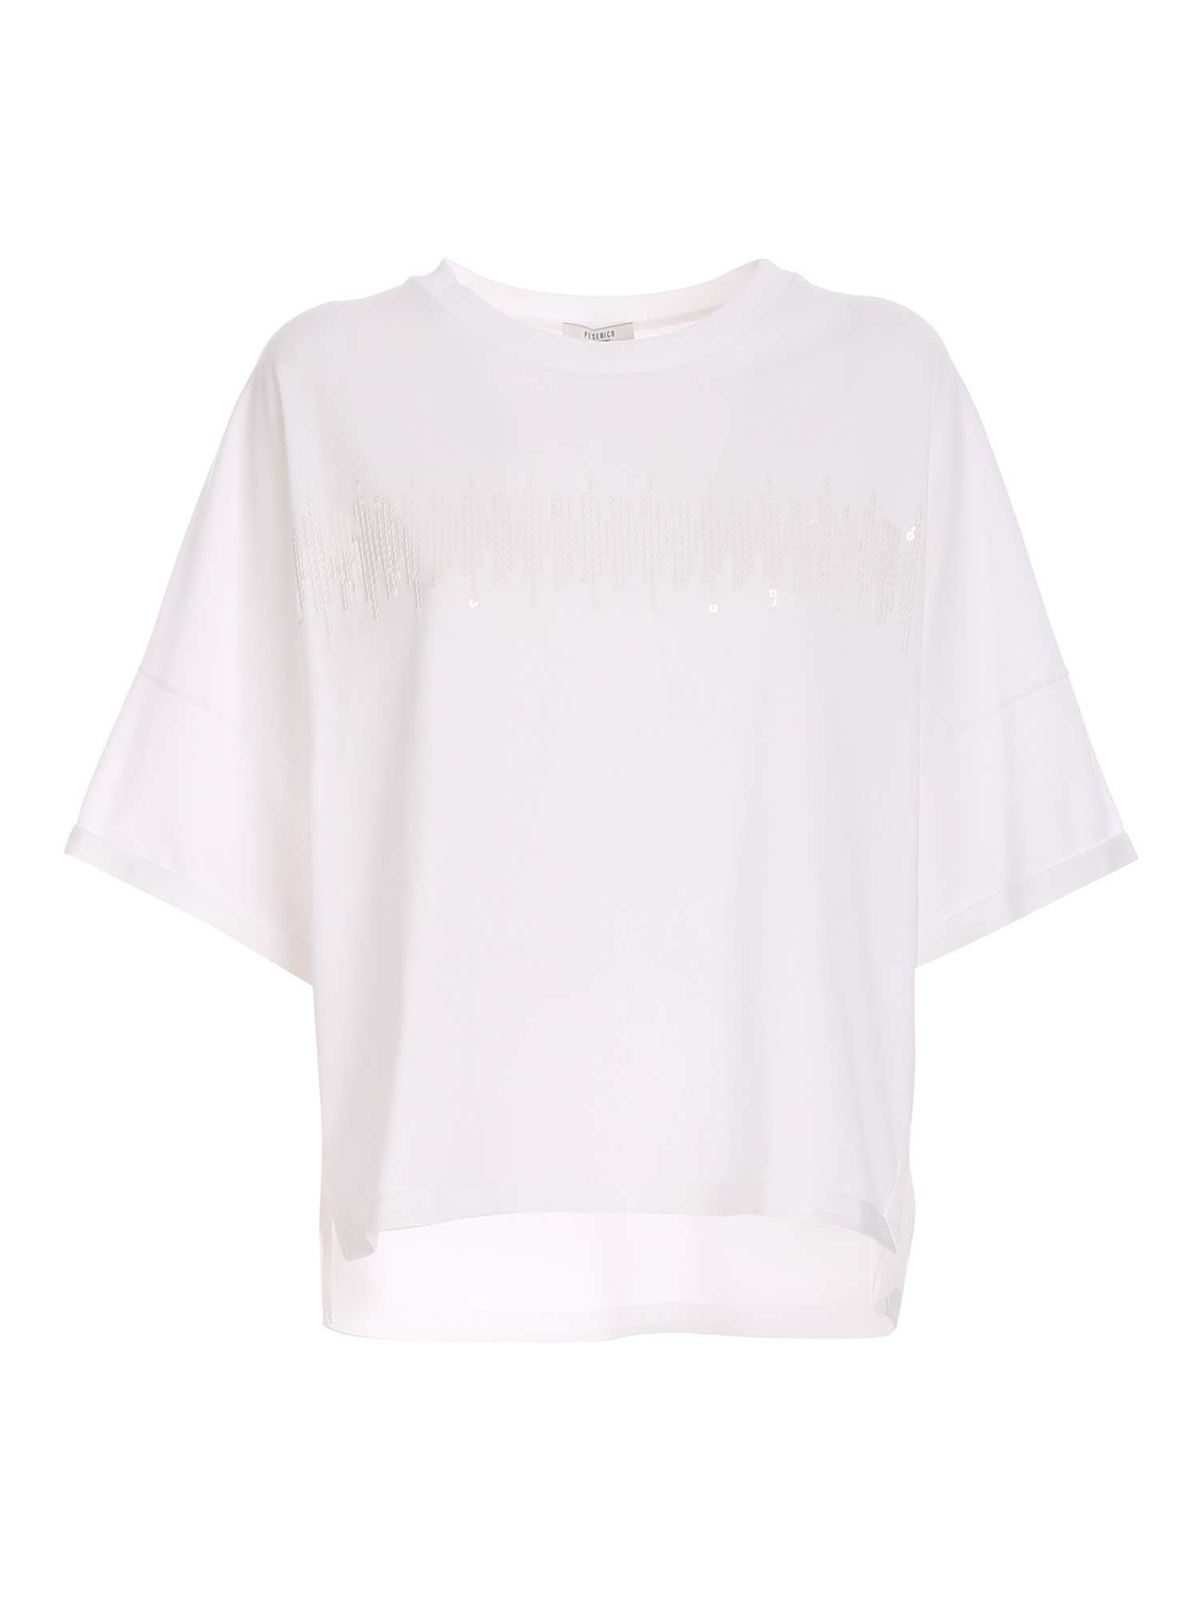 Peserico DROPPED SHOULDER SEQUINS T-SHIRT IN WHITE